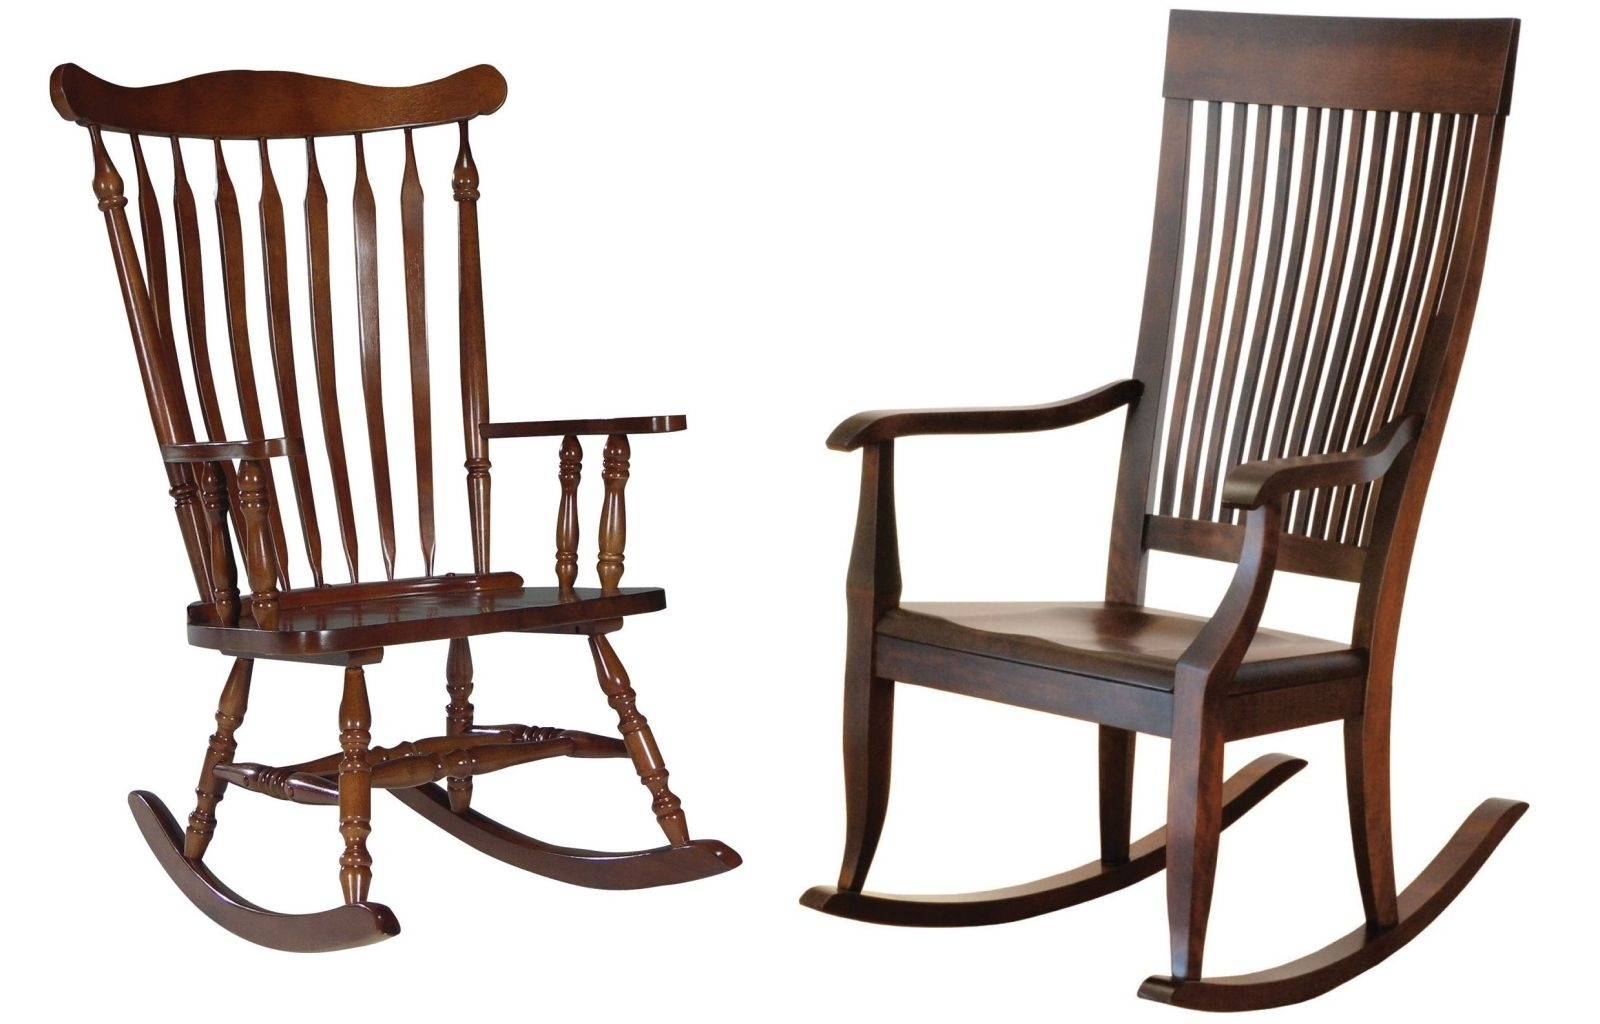 Well Known Old Fashioned Rocking Chairs Throughout Rocking Chair At Modern Interior (View 14 of 15)